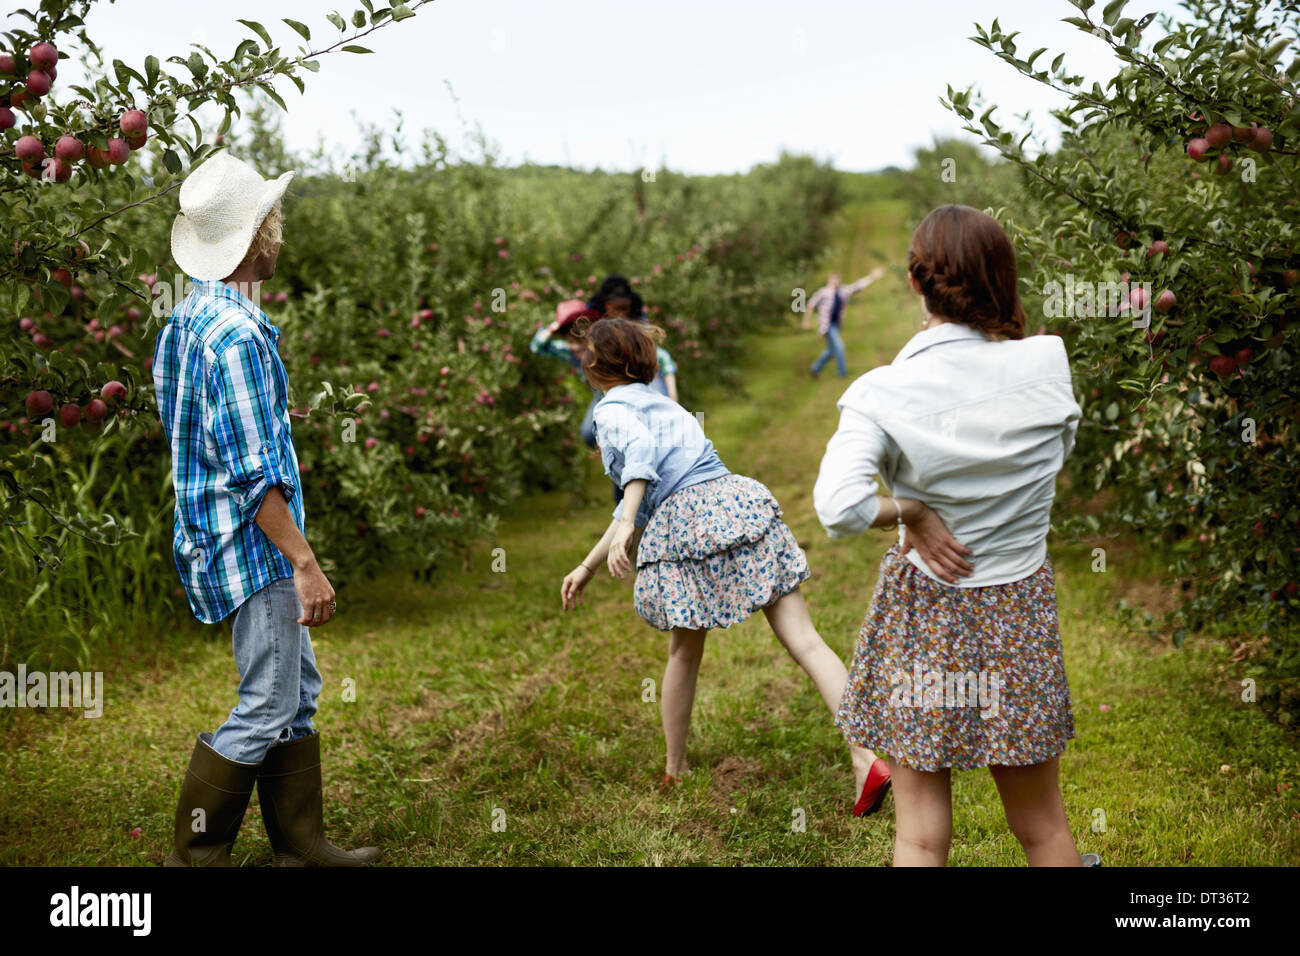 Rows of fruit trees in an organic orchard A man and three young women throwing fruit at each other - Stock Image